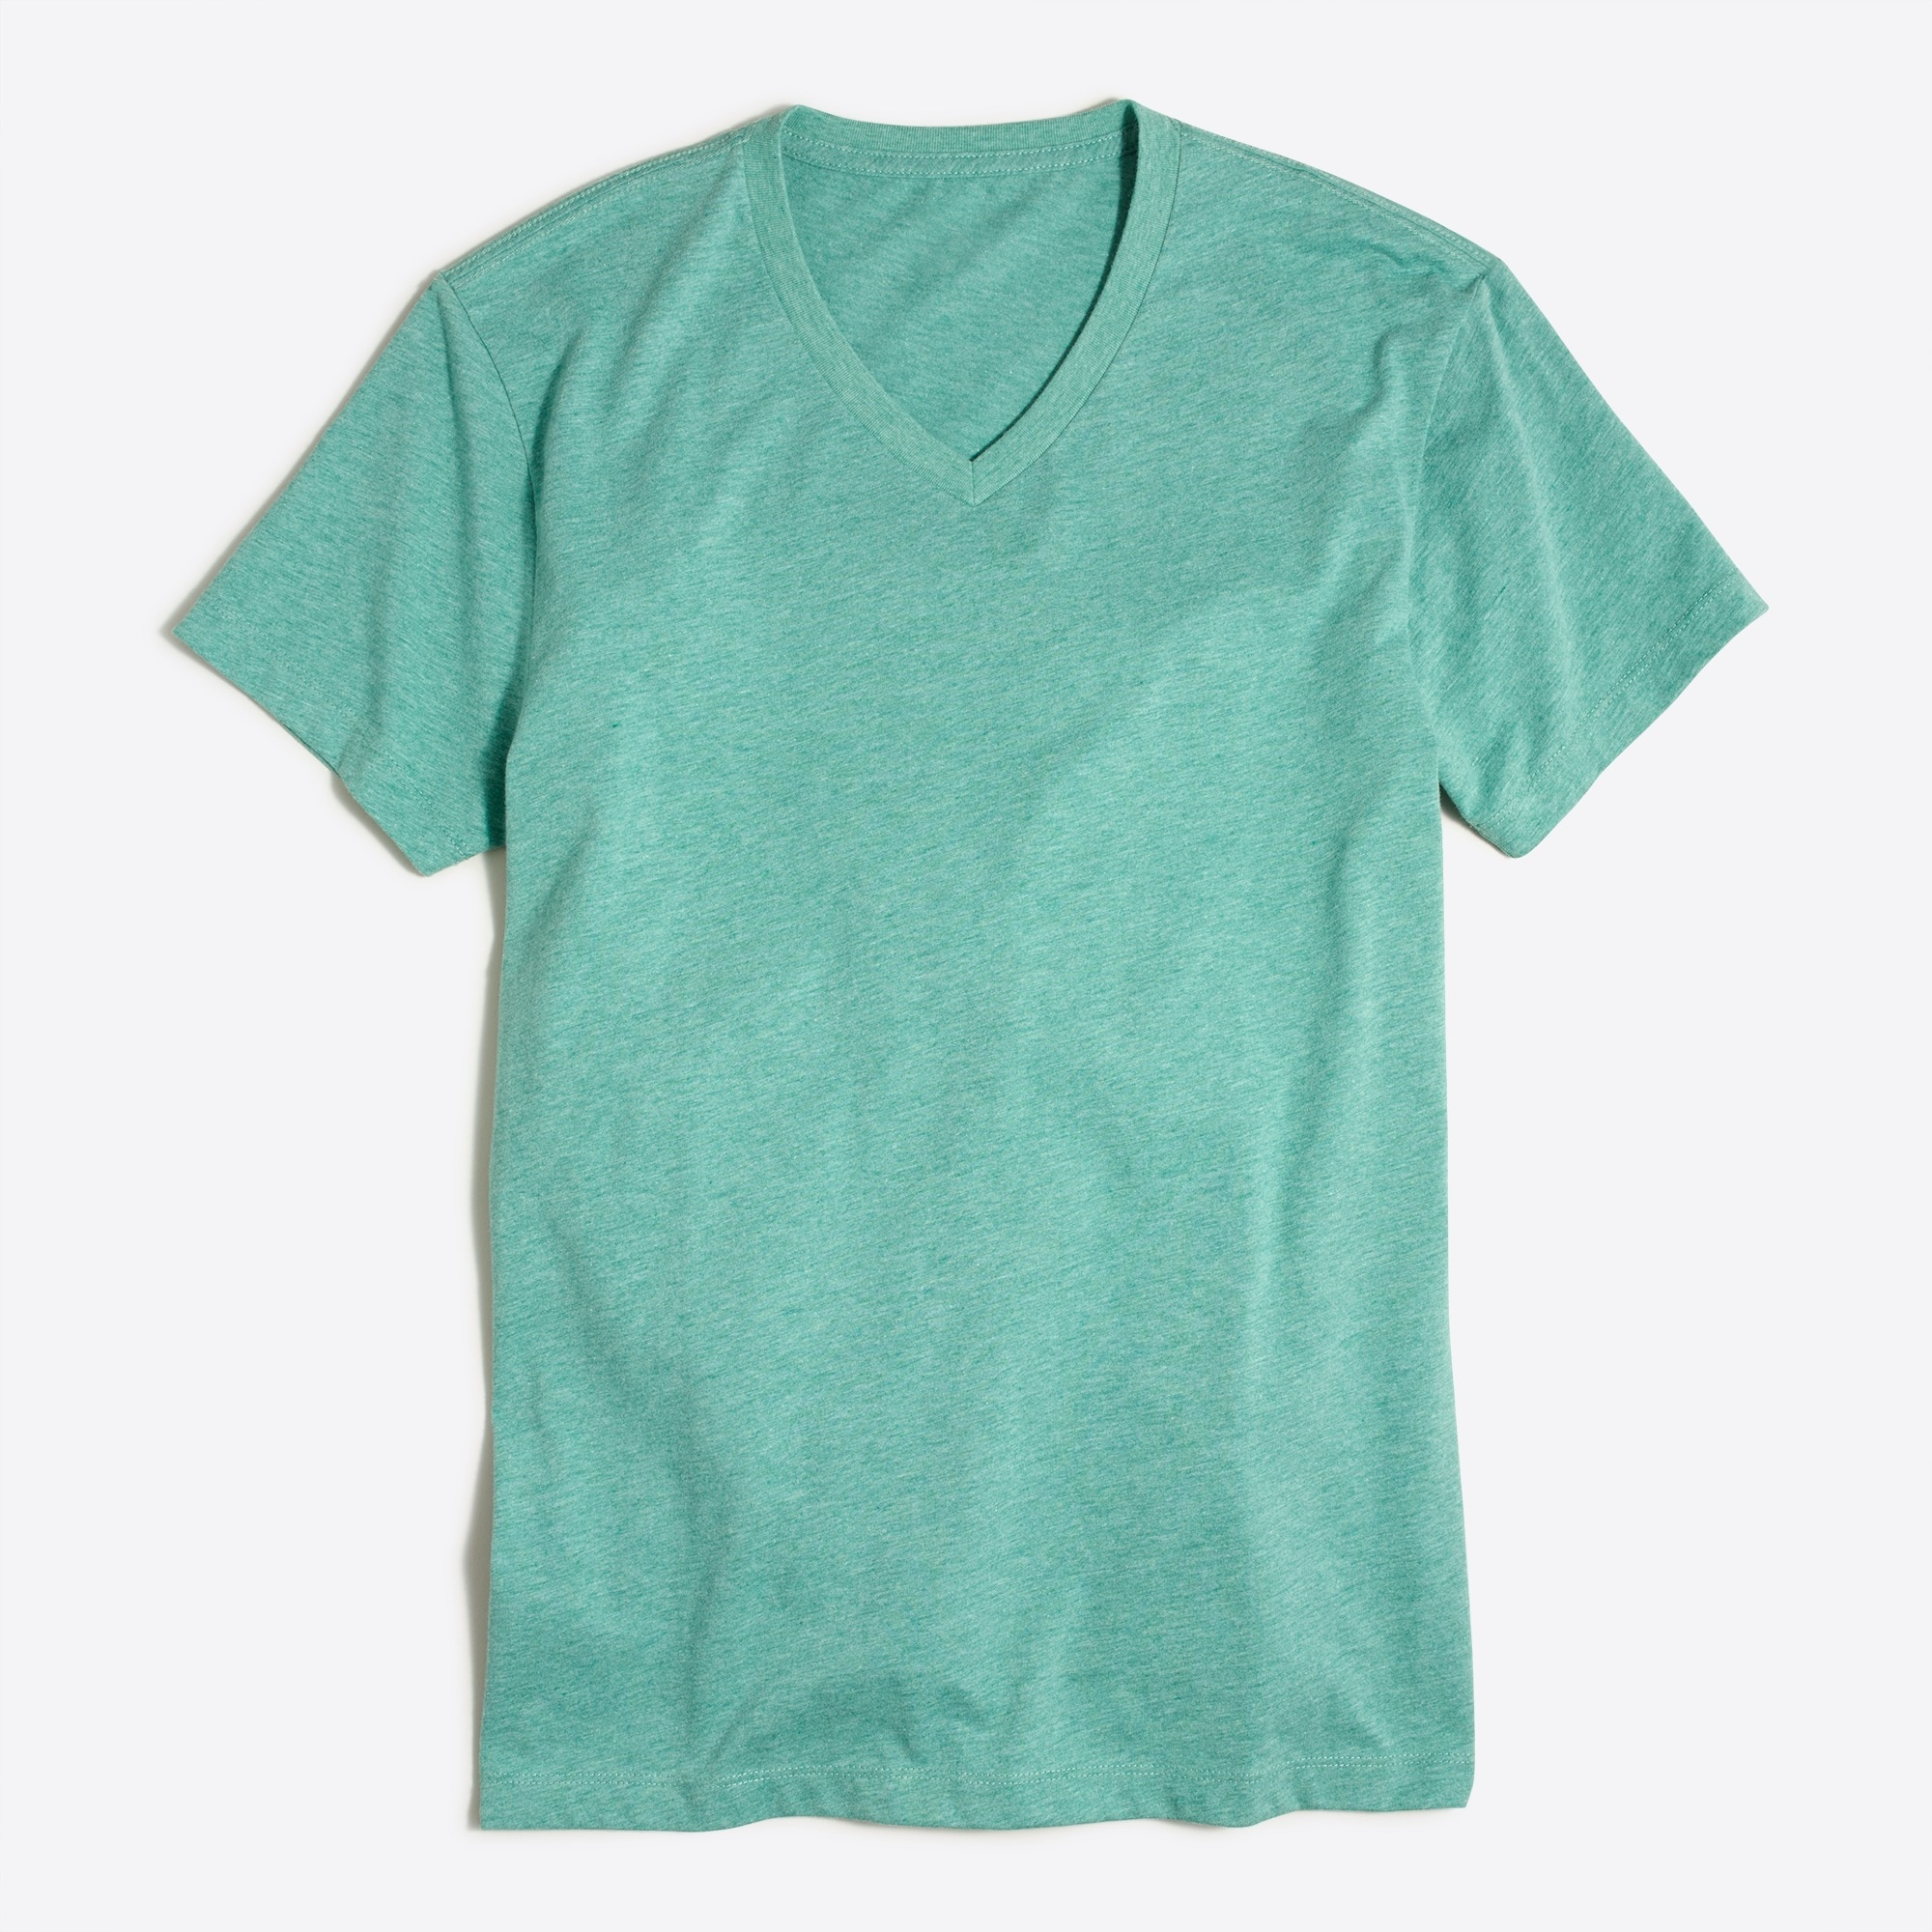 J.Crew Mercantile slim heathered Broken-in V-neck T-shirt factorymen t-shirts & henleys c